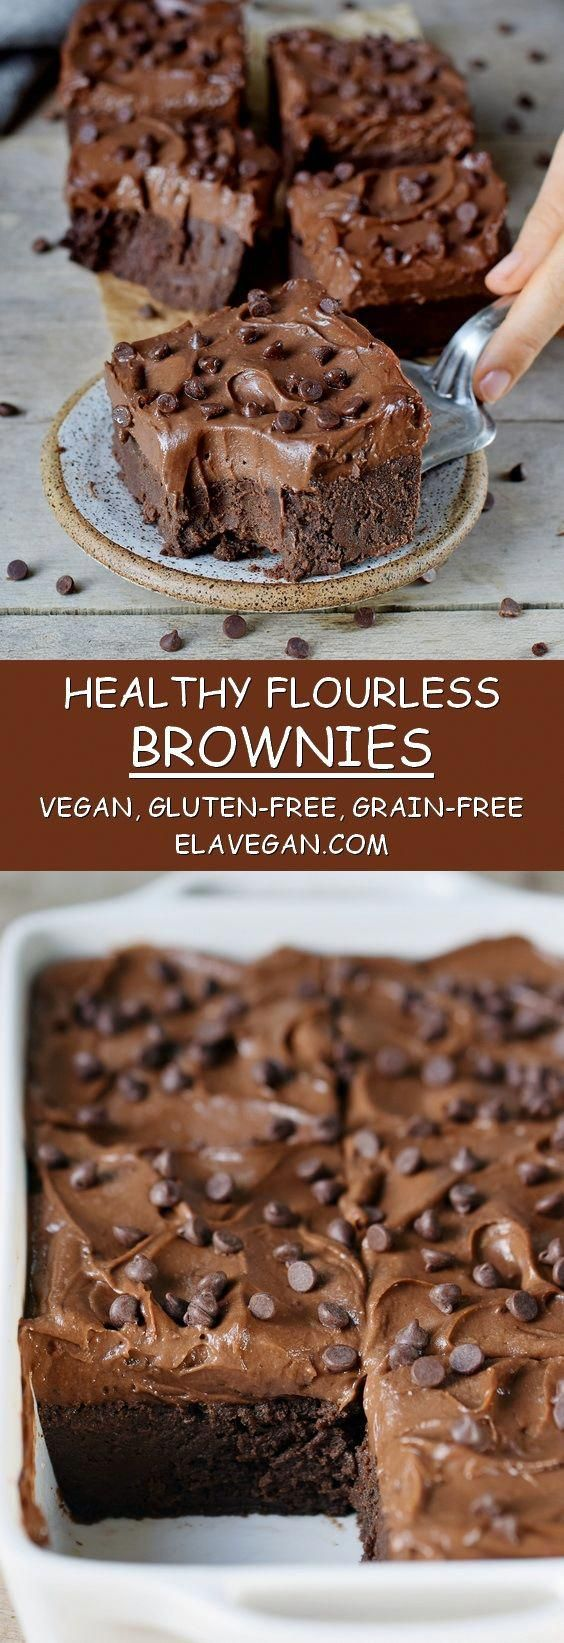 These flourless brownies with a sweet potato frosting are absolutely delectable. They are vegan, gluten-free, oil-free, grain-free, protein-rich, fudgy, chocolatey, and so rich! Made with chickpeas and other wholesome ingredients! |